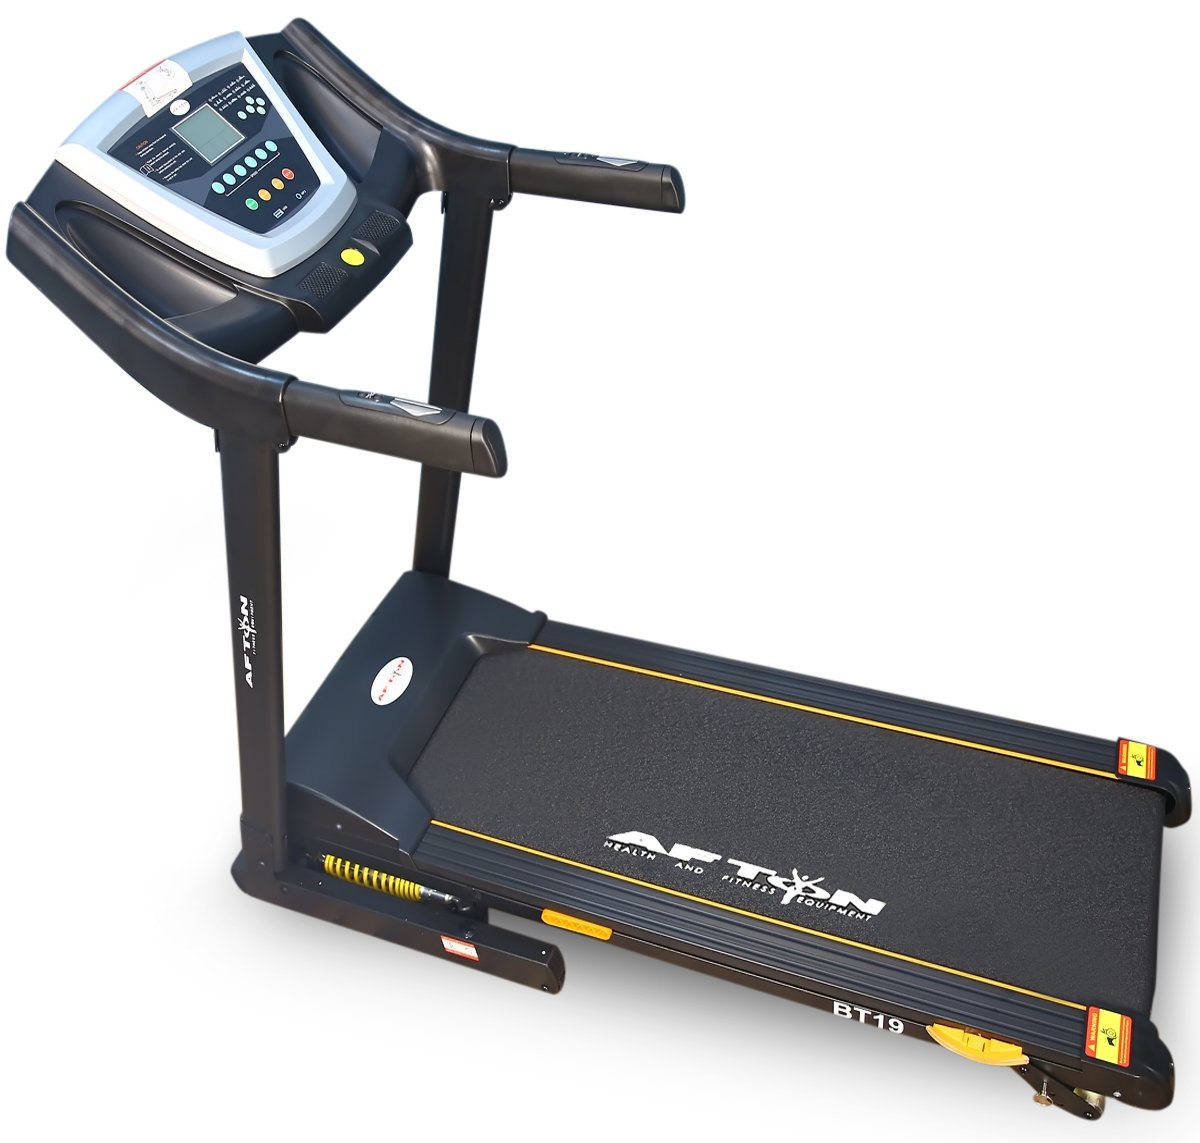 Afton BT-19 Steel Motorised Treadmill review